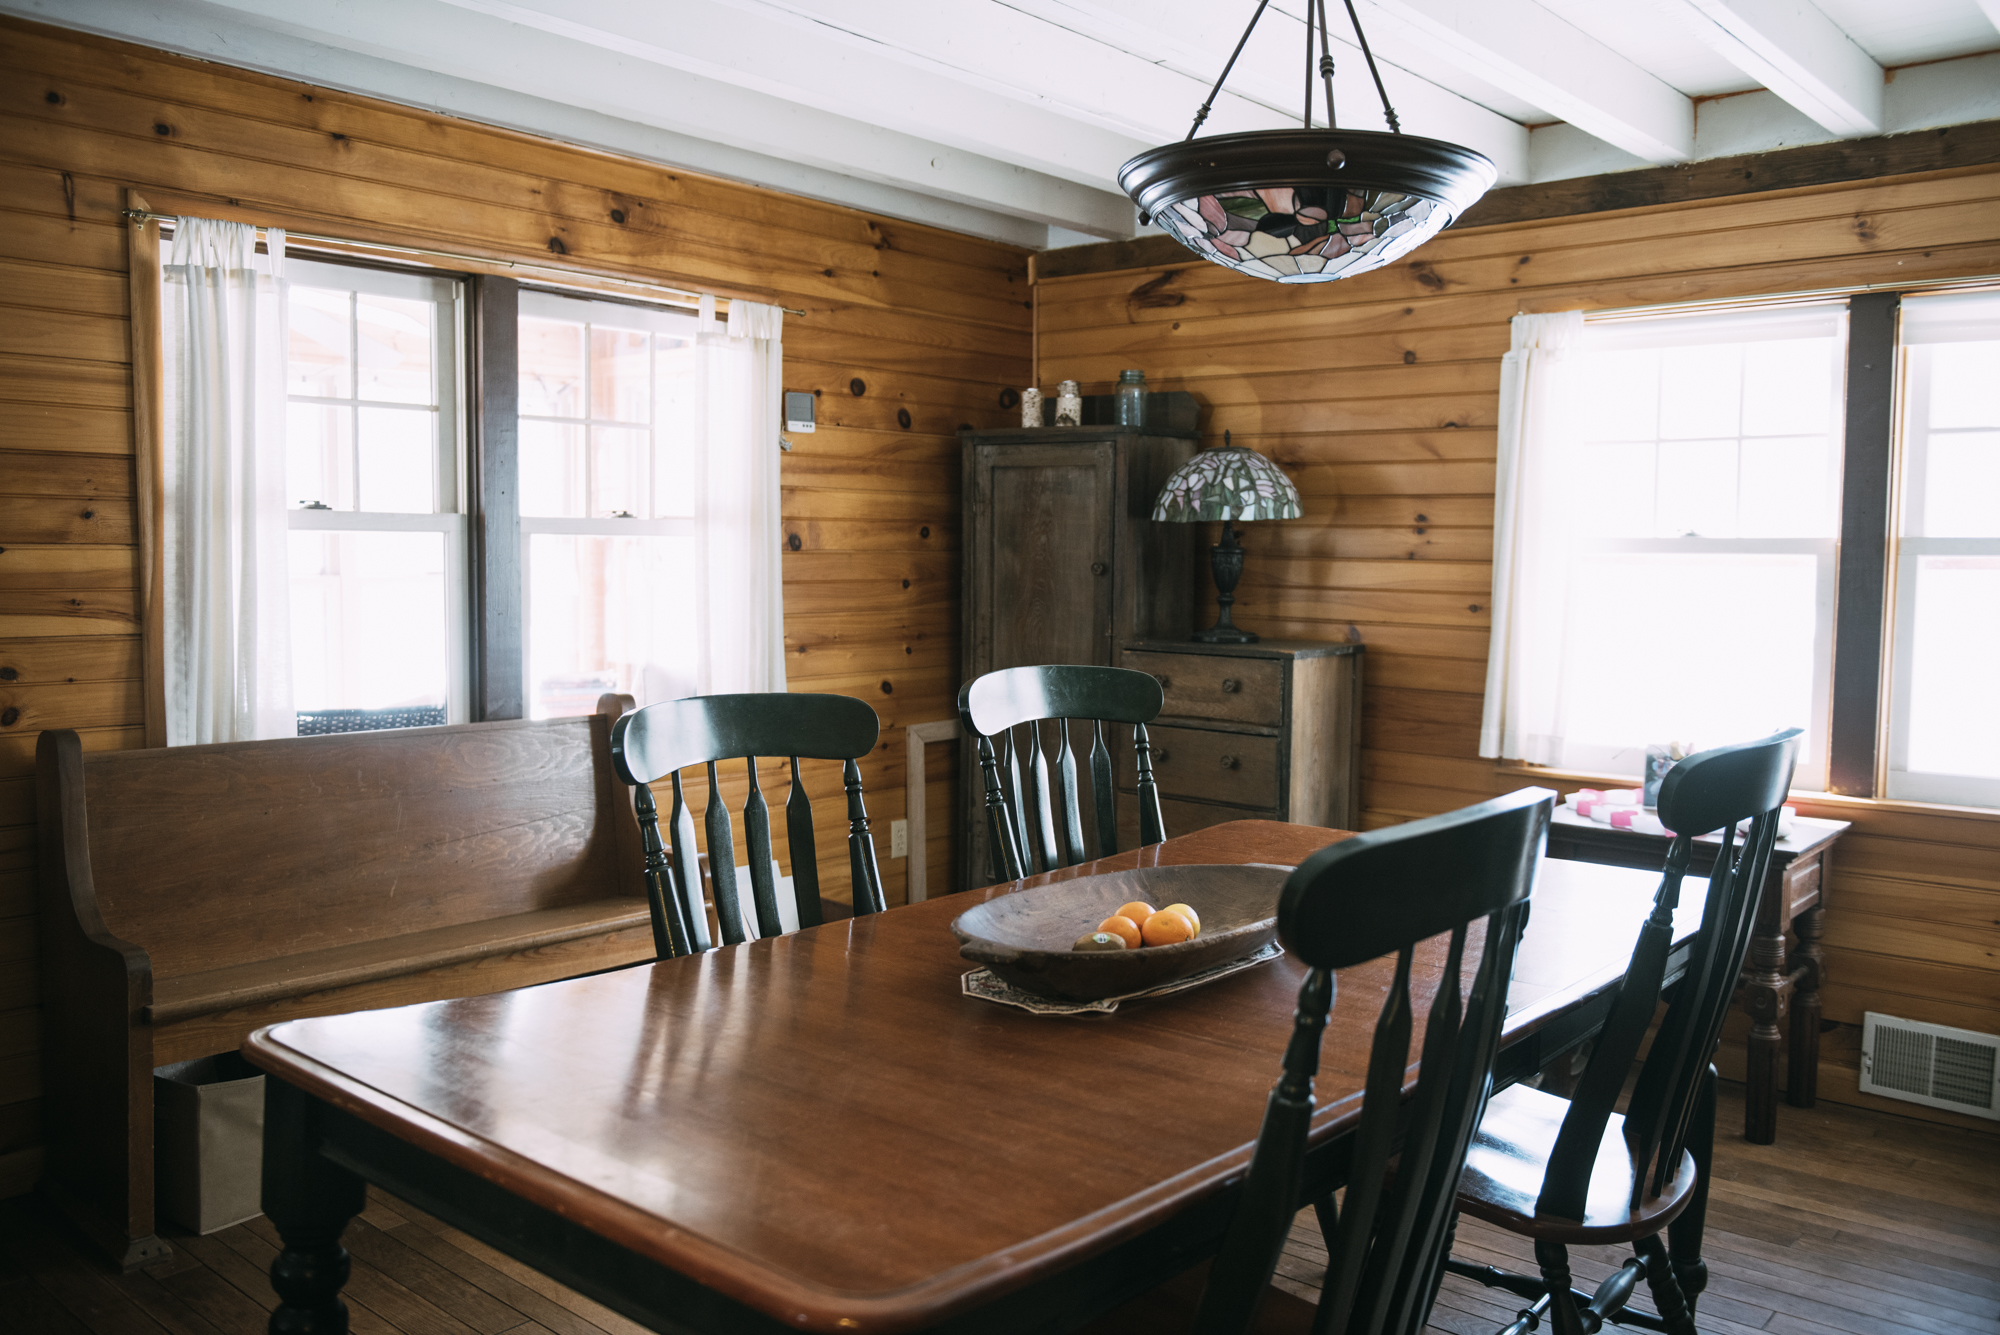 The Black Bear cabin at Wellnesste Lodge in Upstate New York- comfortable, affordable, down-to-earth.